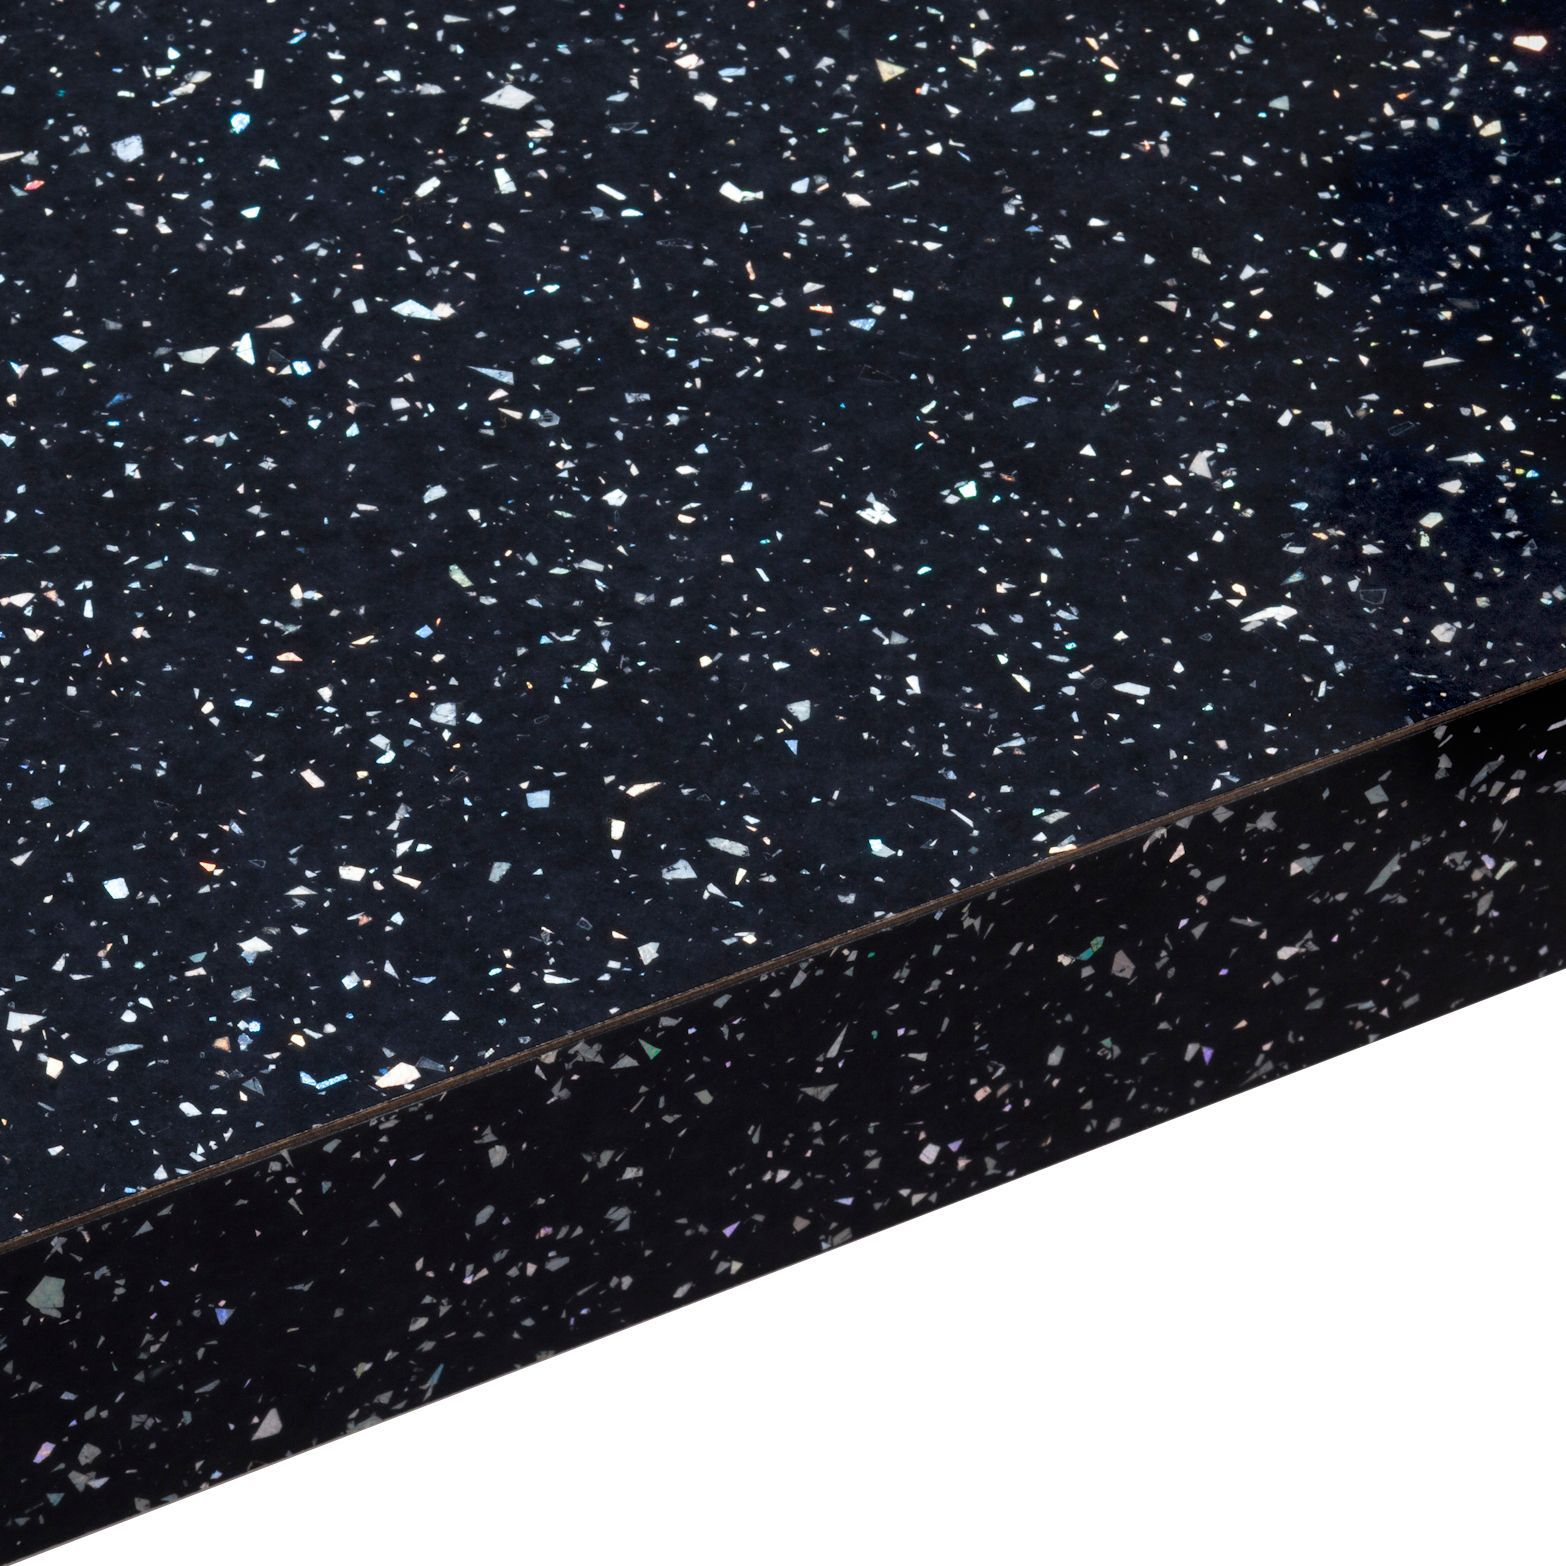 38mm Astral Black Gloss Laminate Square Edge Worktop L